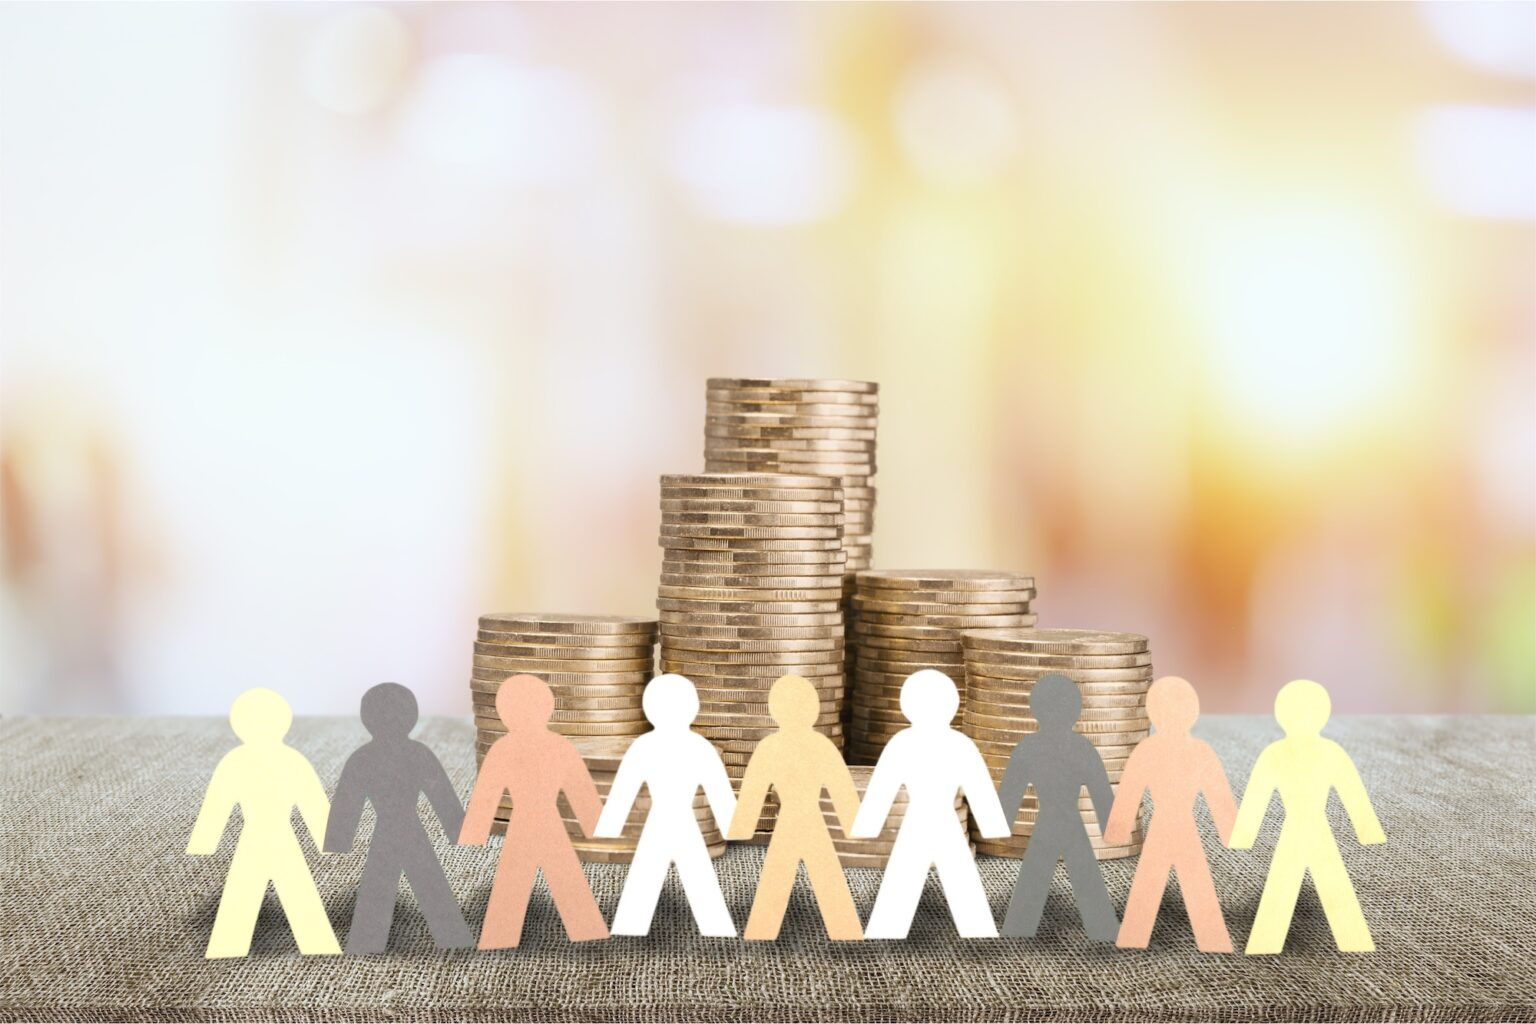 Paper figurines of diverse people standing in front of stack of coins